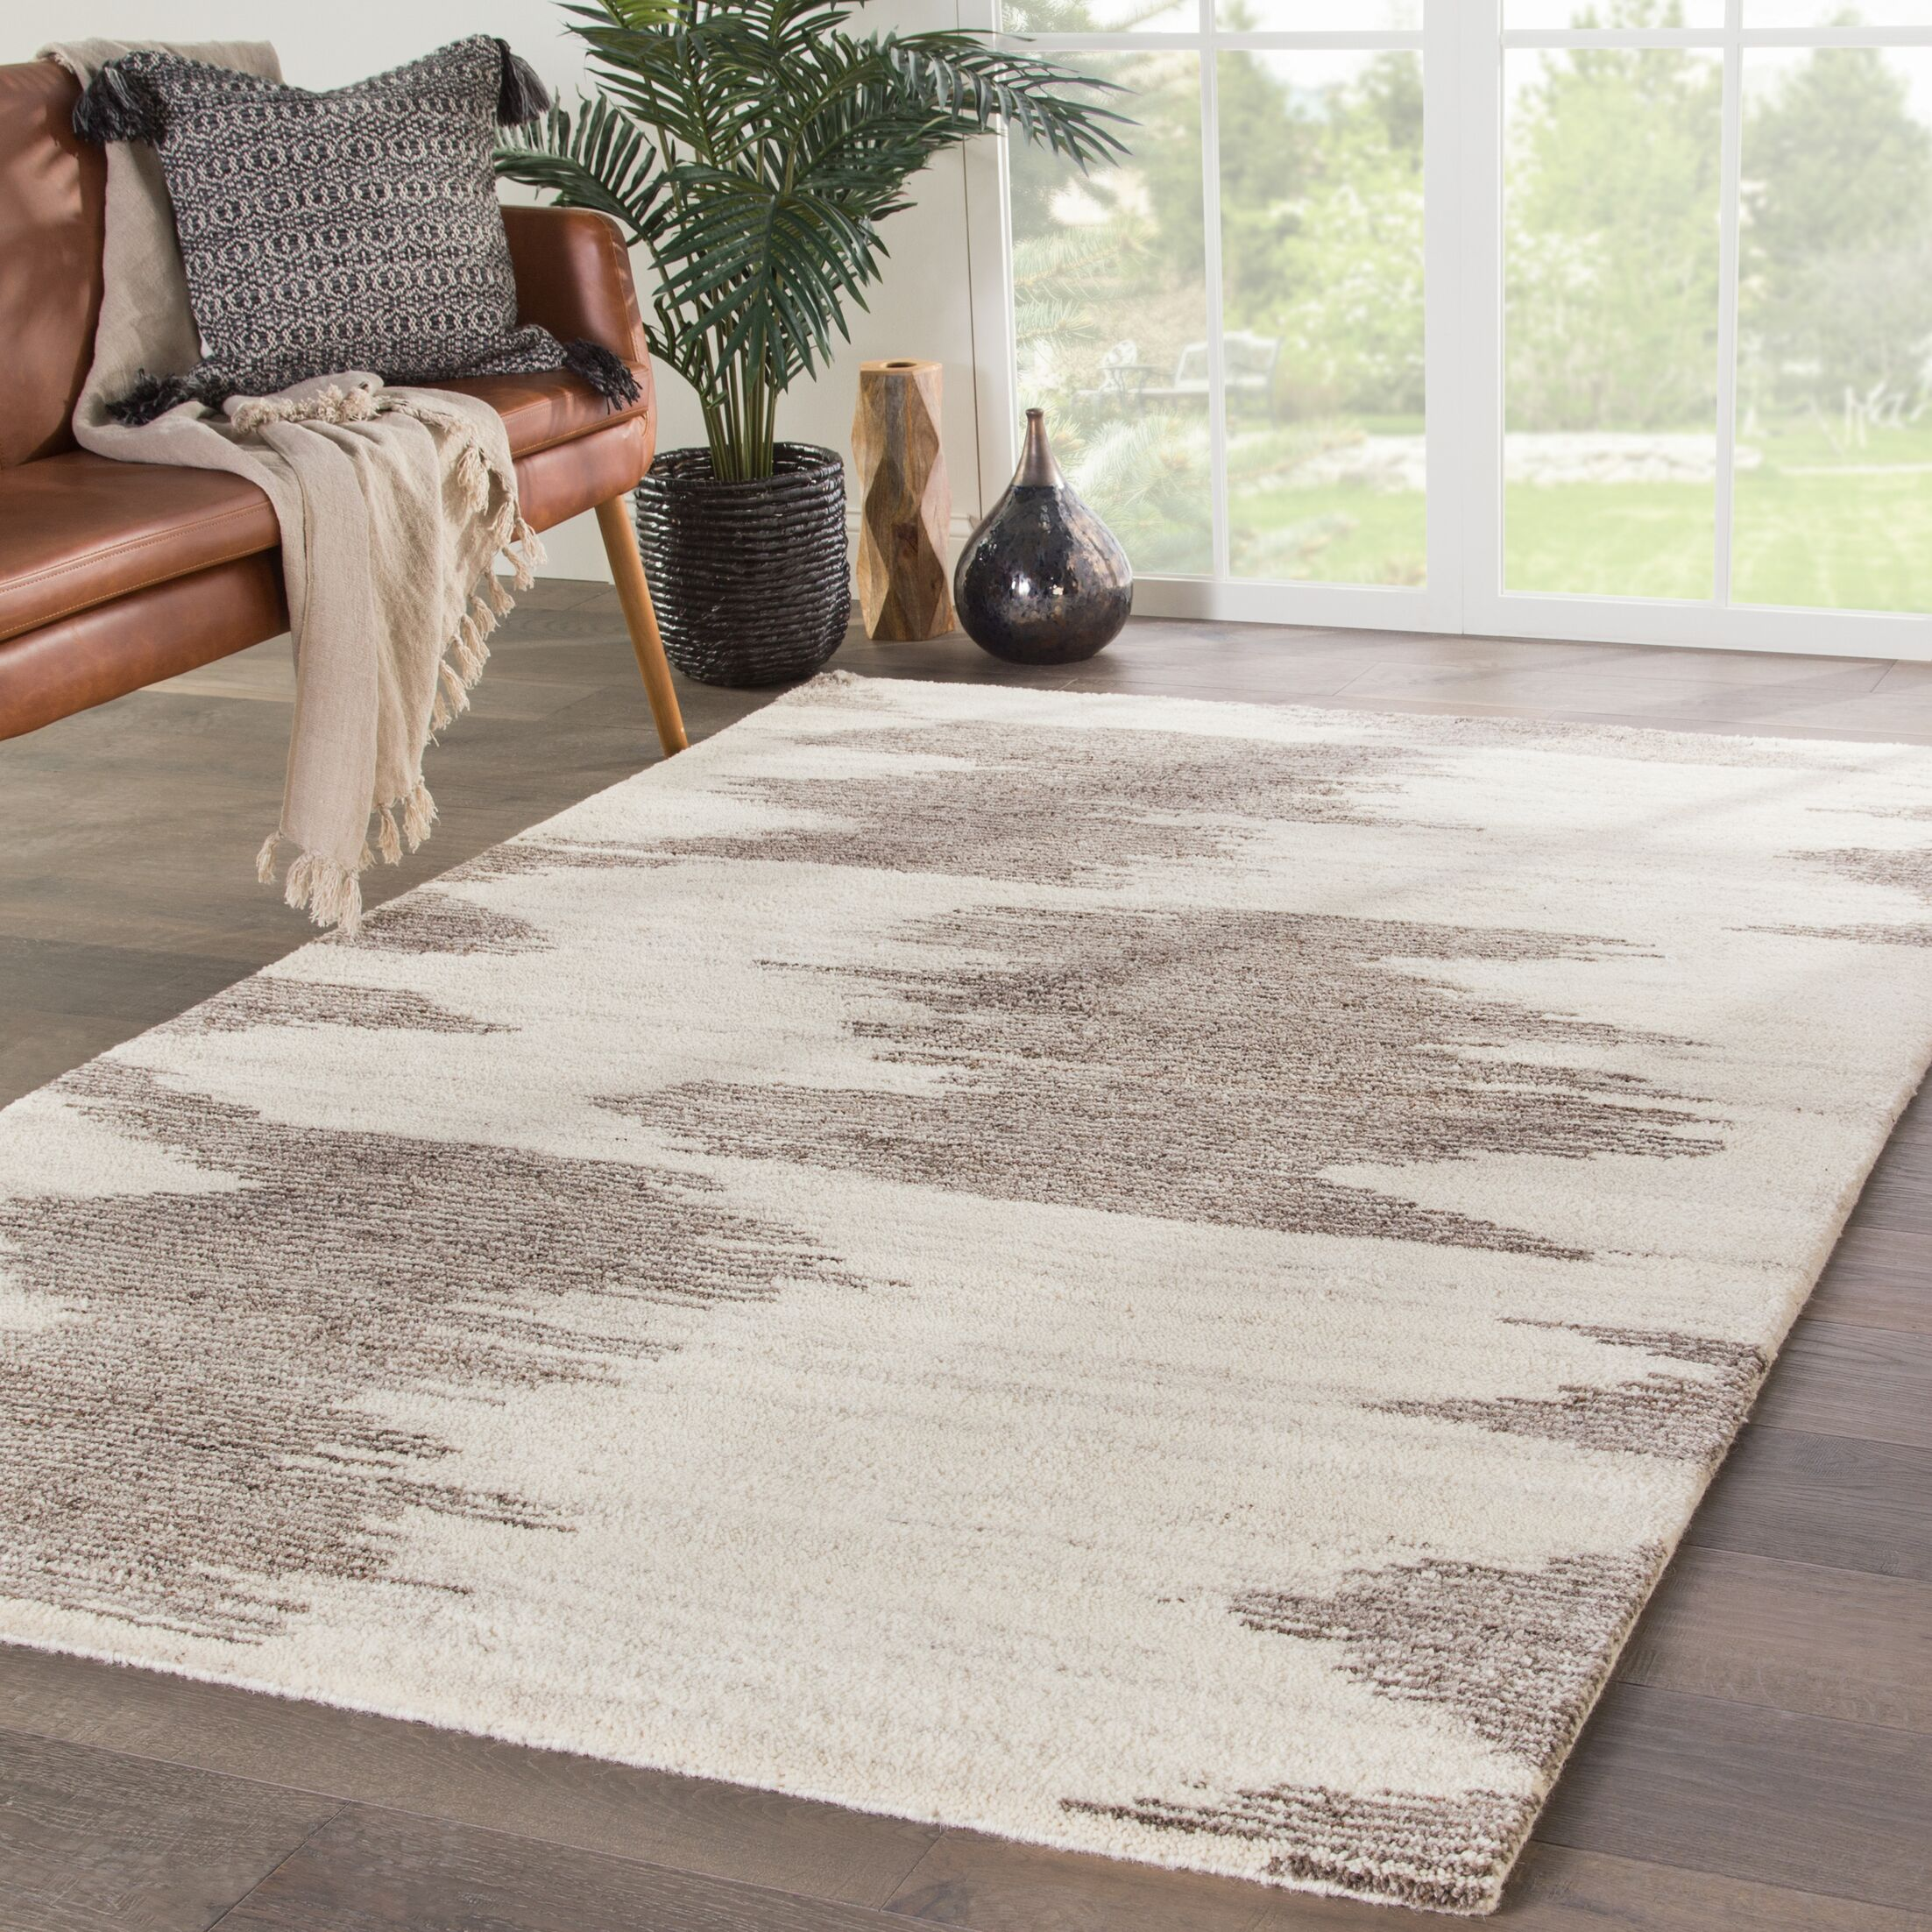 Page Hand-Knotted Wool Ivory/Gray Area Rug Rug Size: Rectangle 5' x 8'